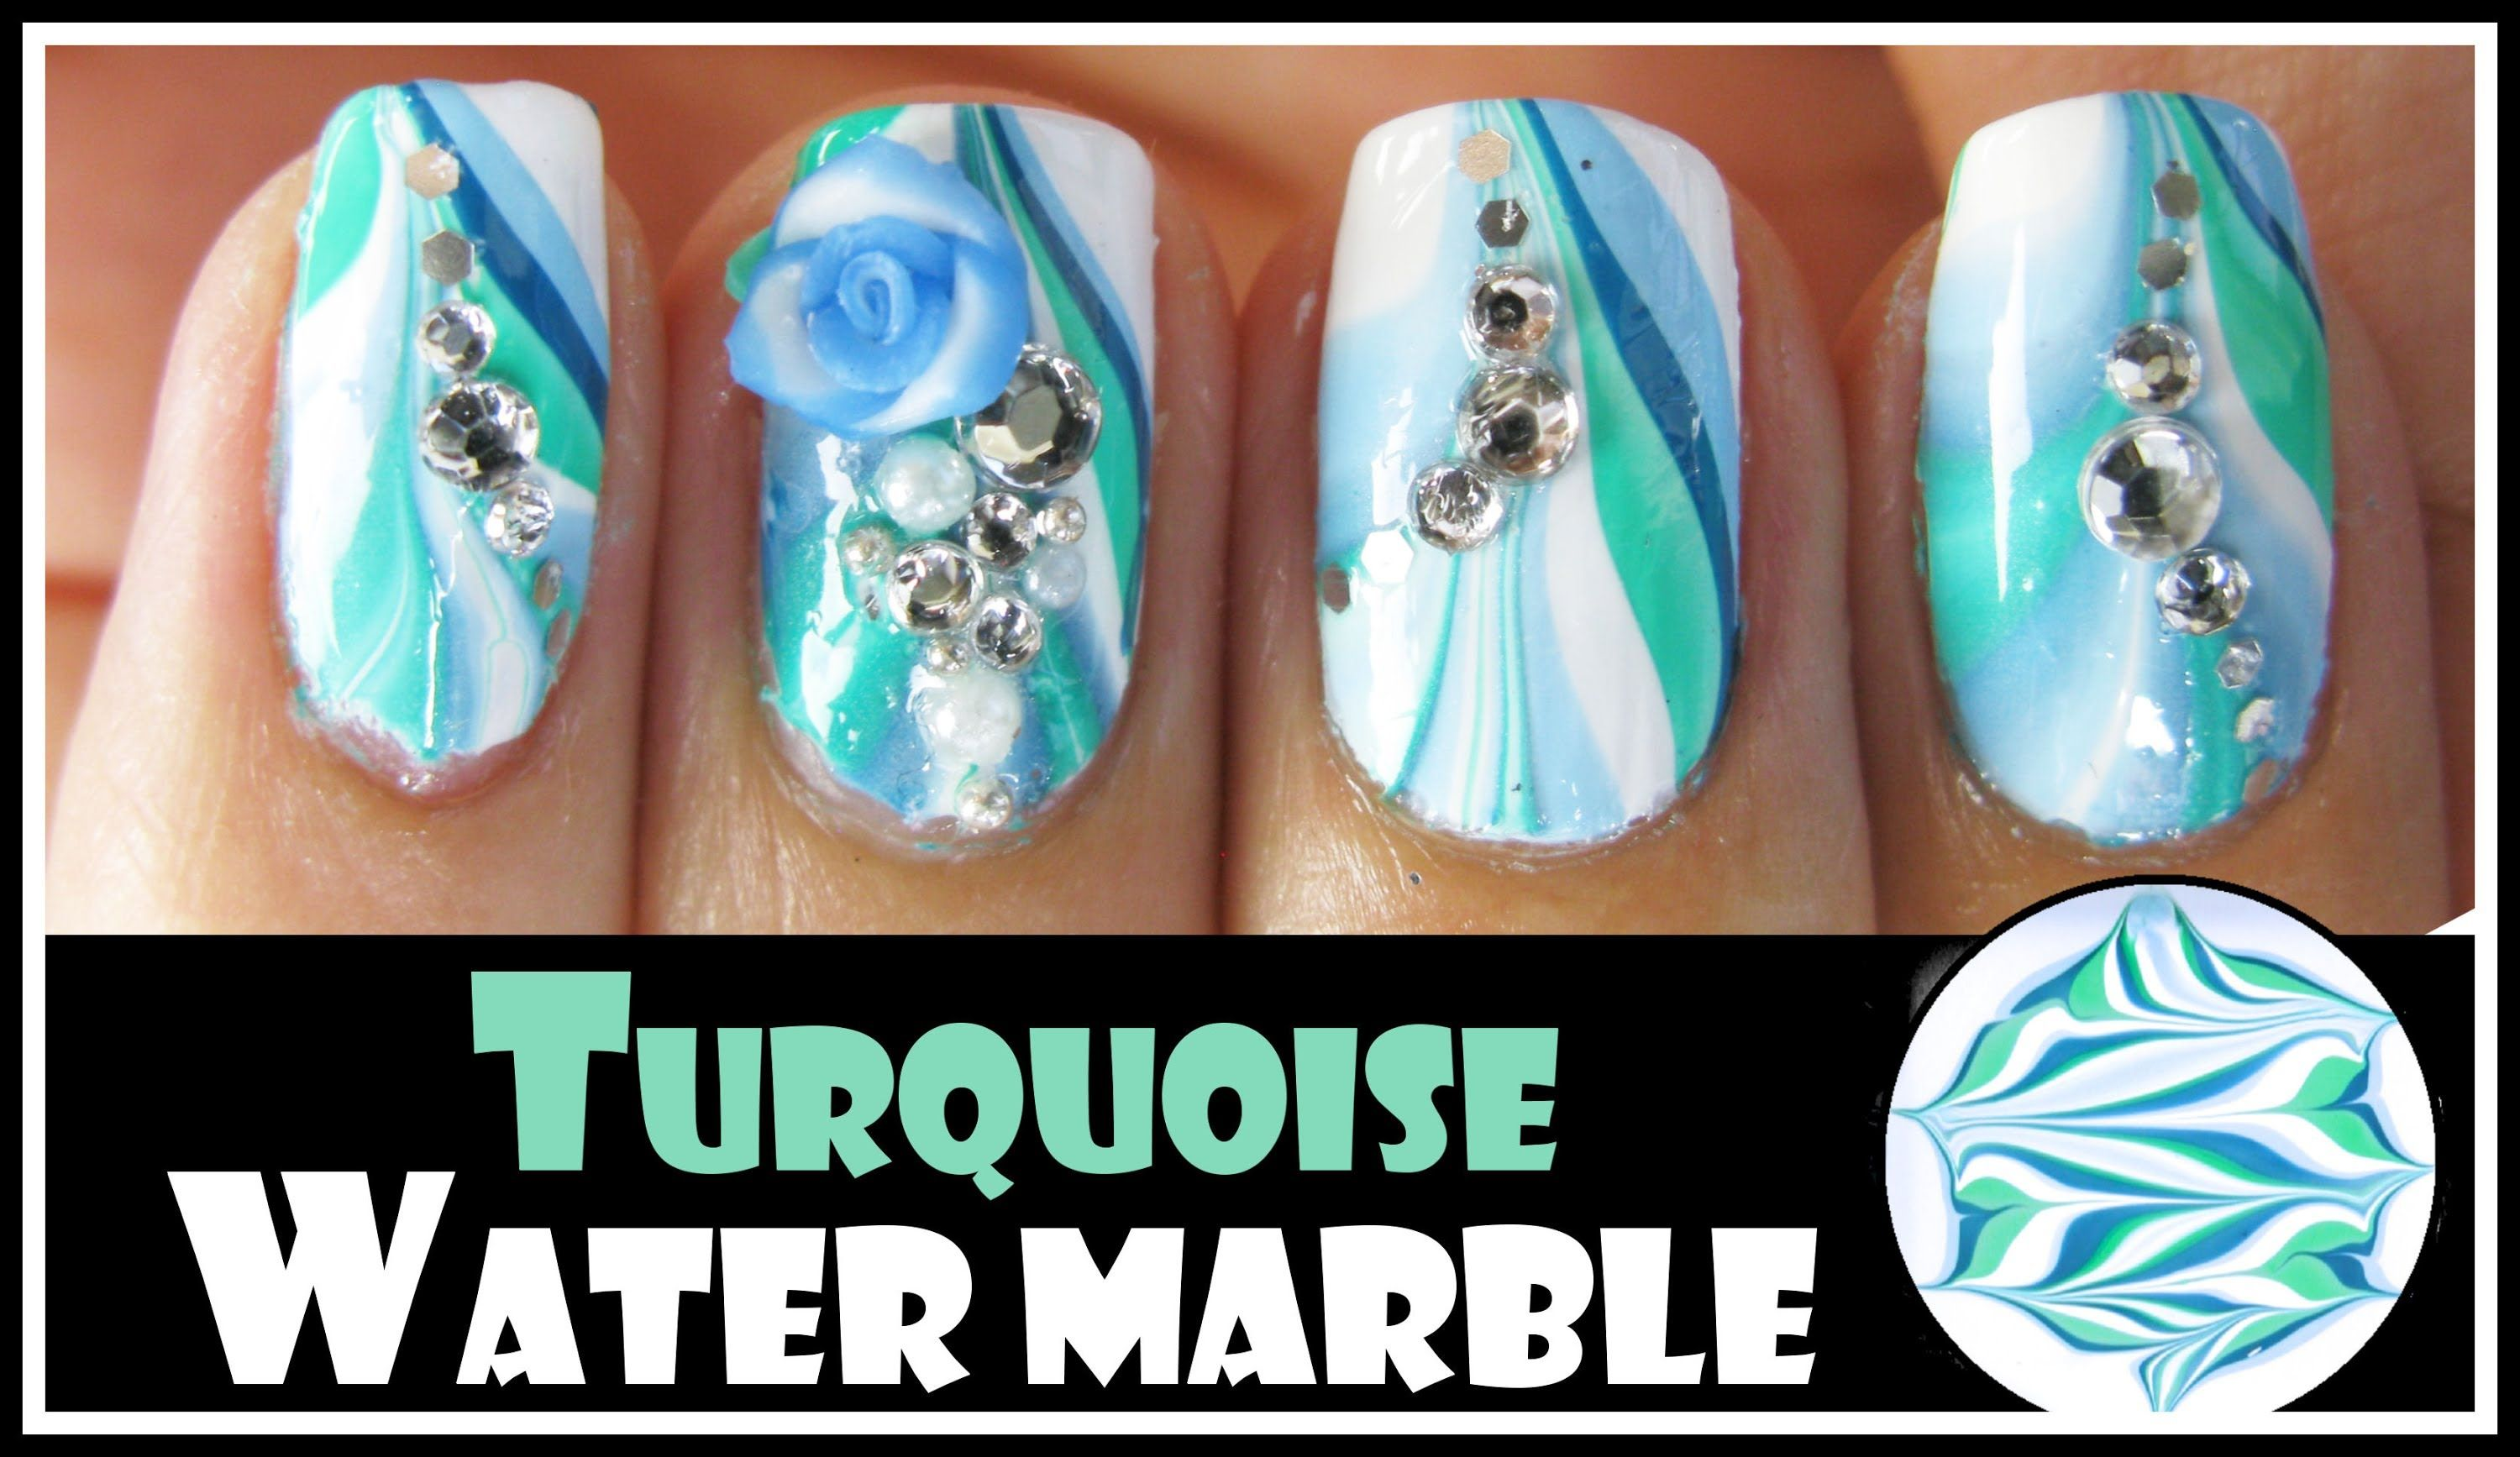 Turquoise Water Marble Nail Art Design For Spring Green Blue